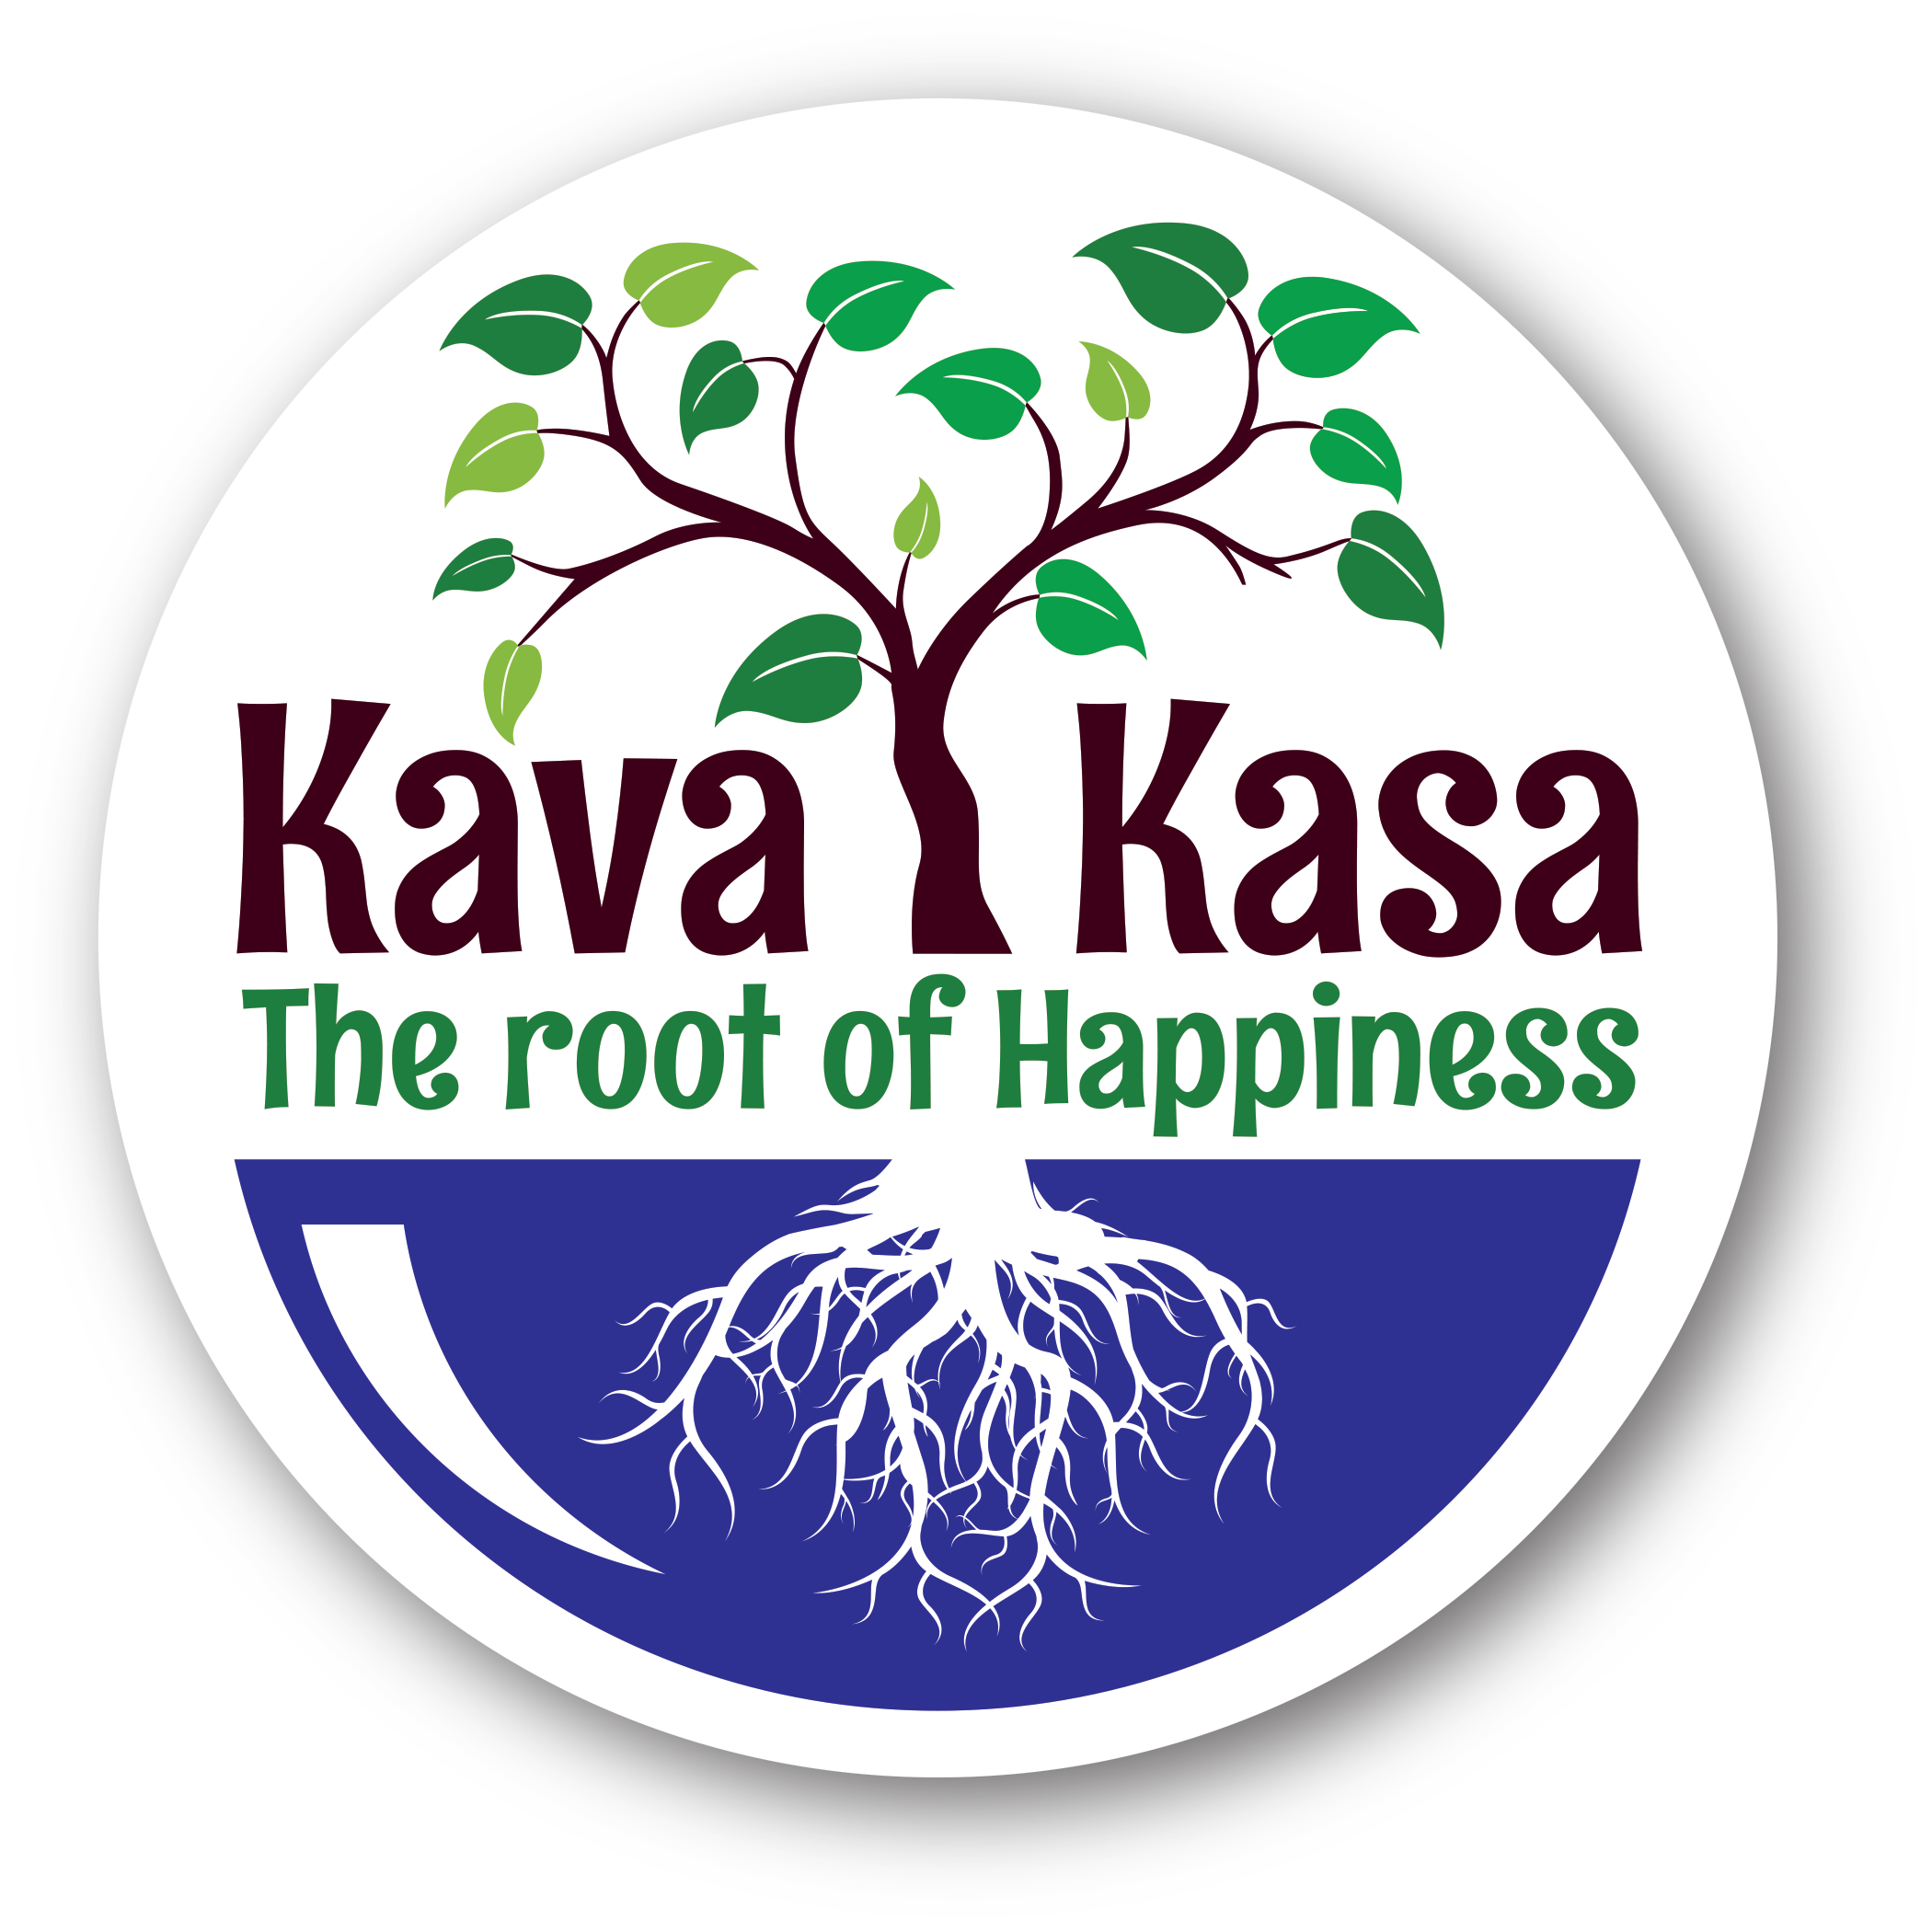 kavakasagr com – Kava Bar & Coffee House